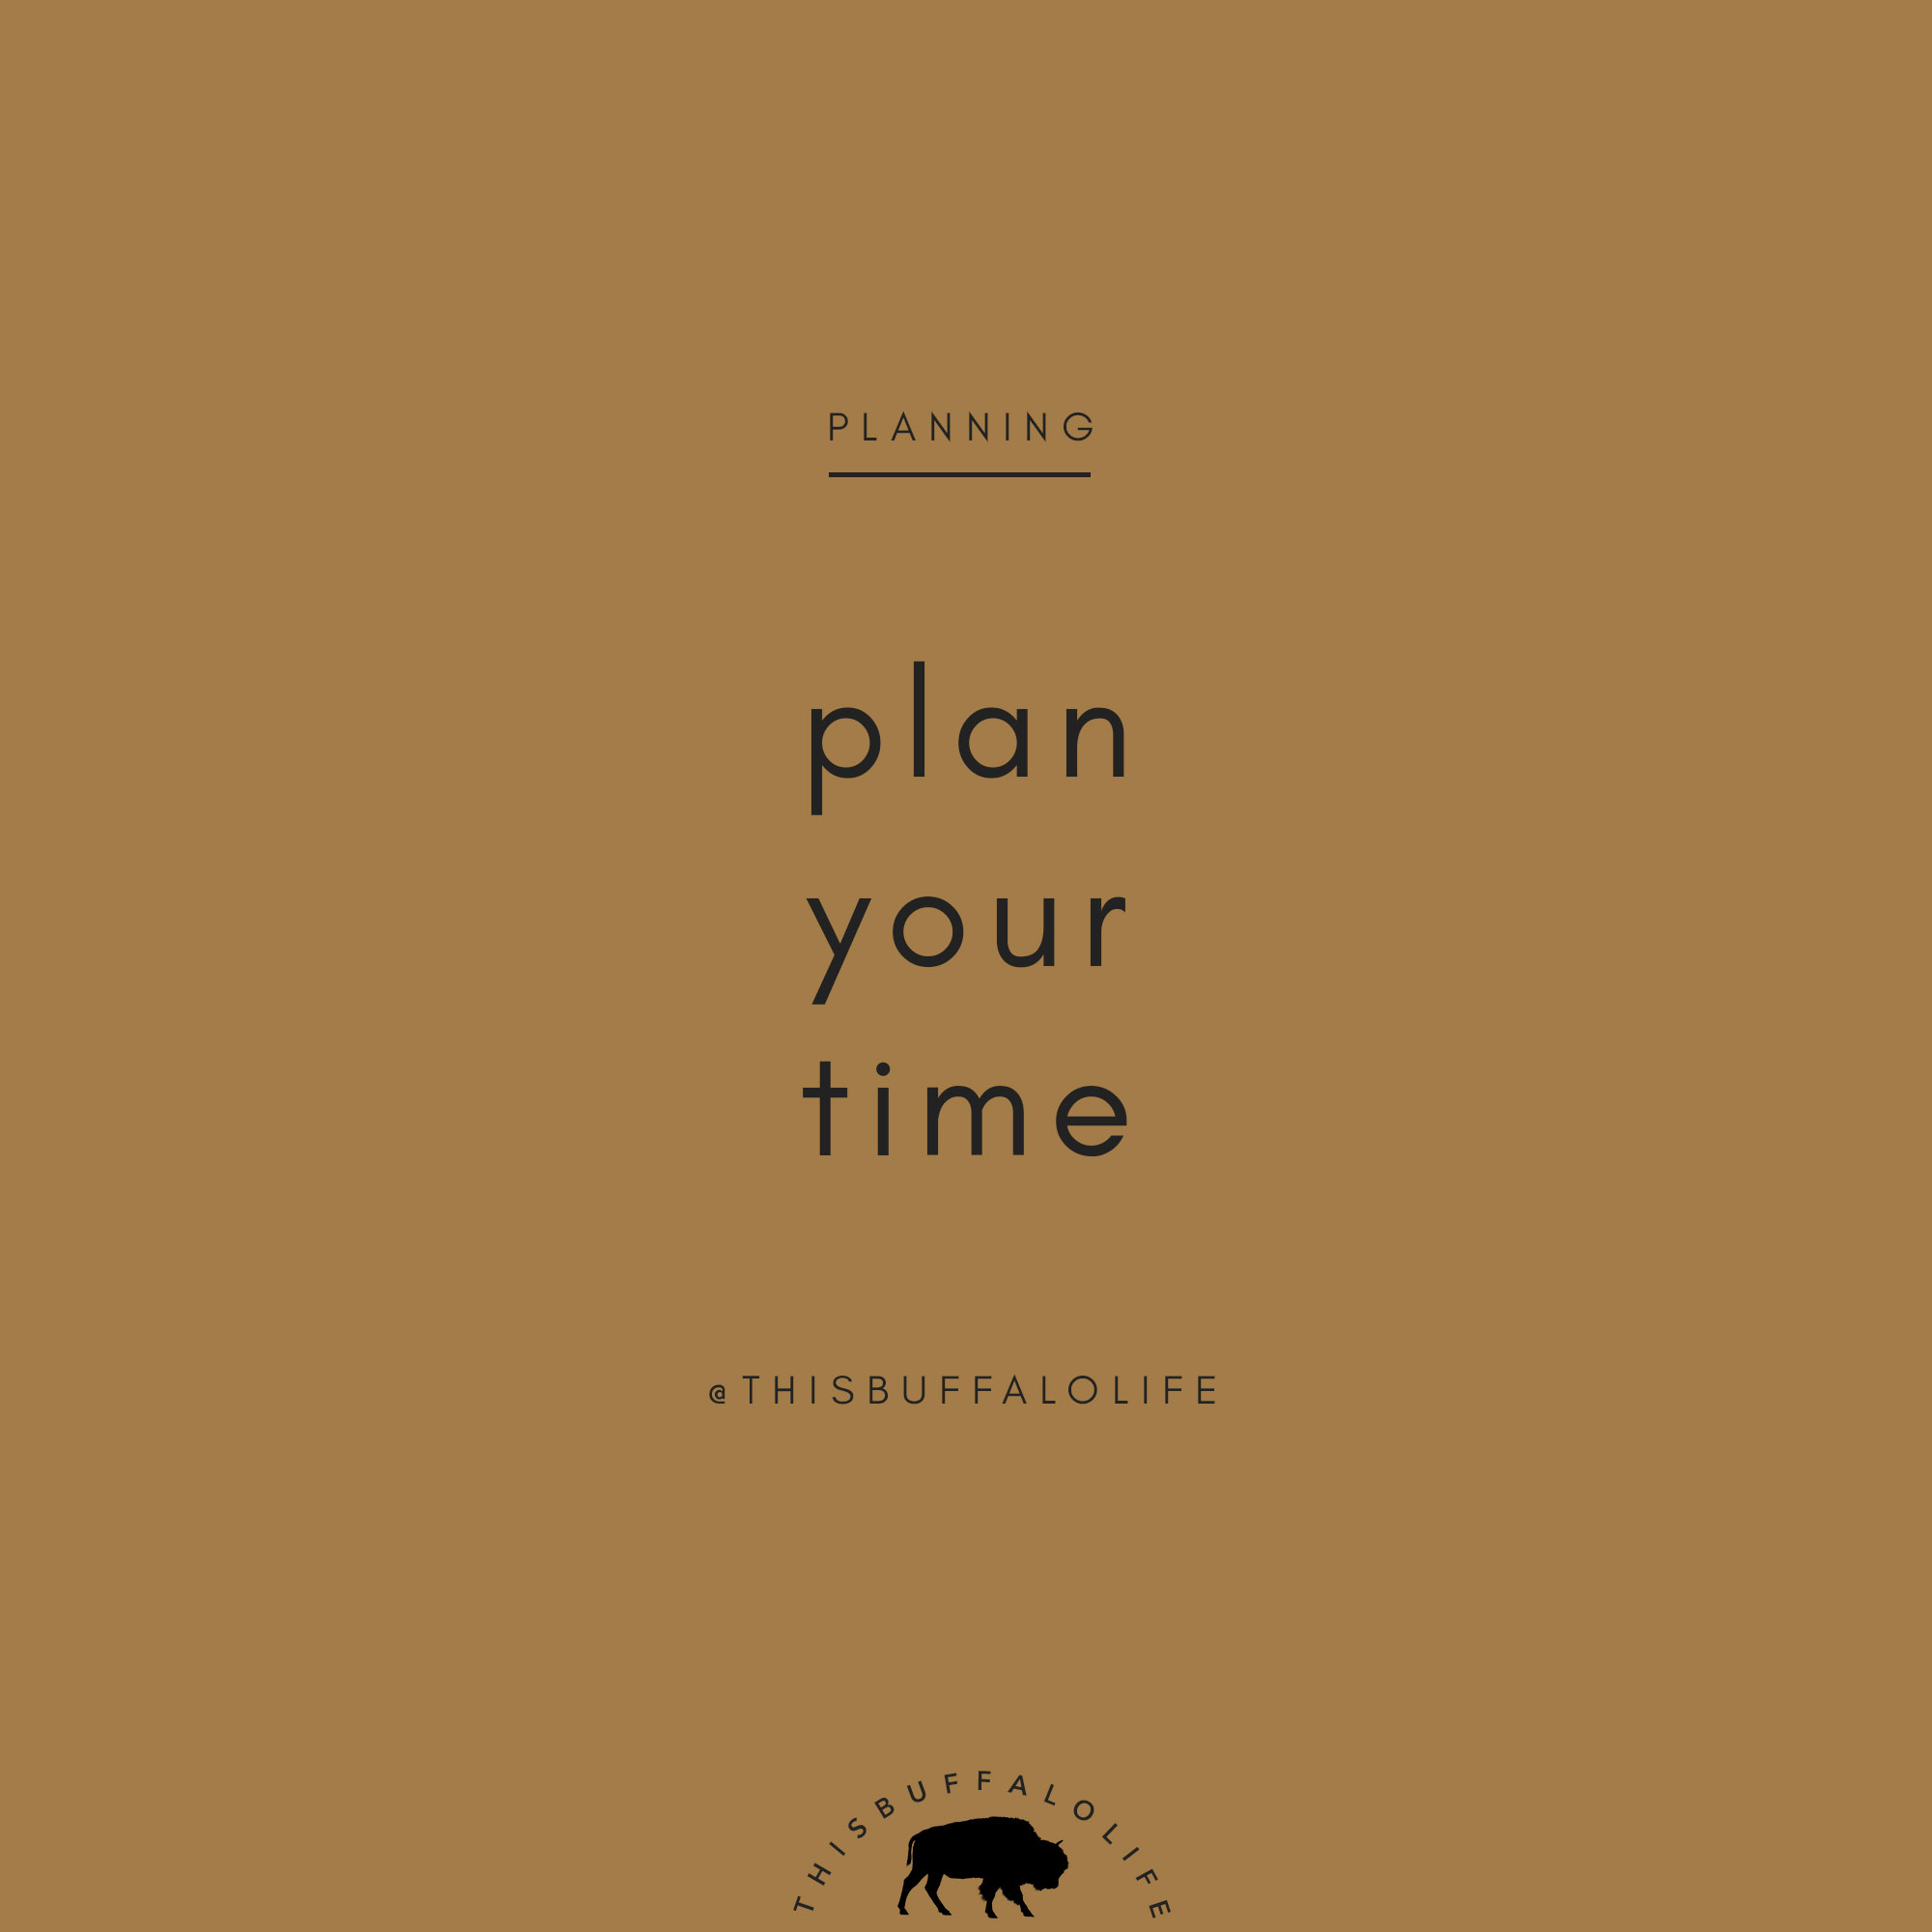 plan-your-time.jpg